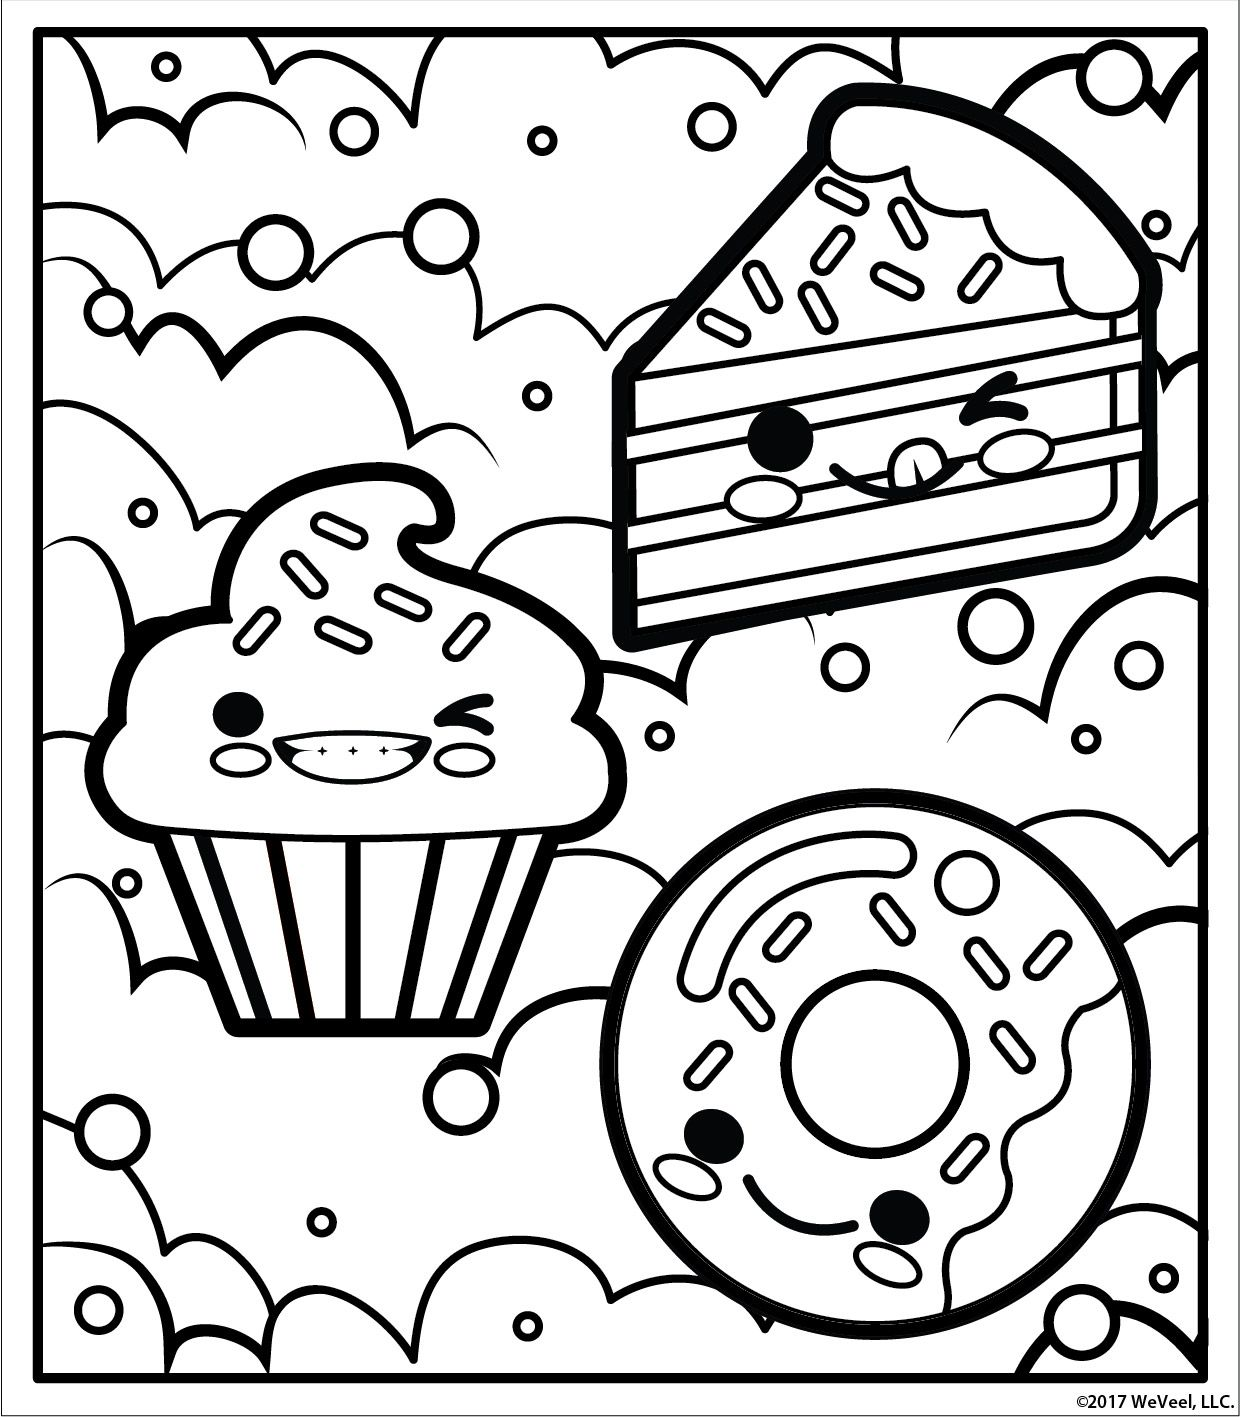 Free printable coloring page | Word serches and coloring pages ...